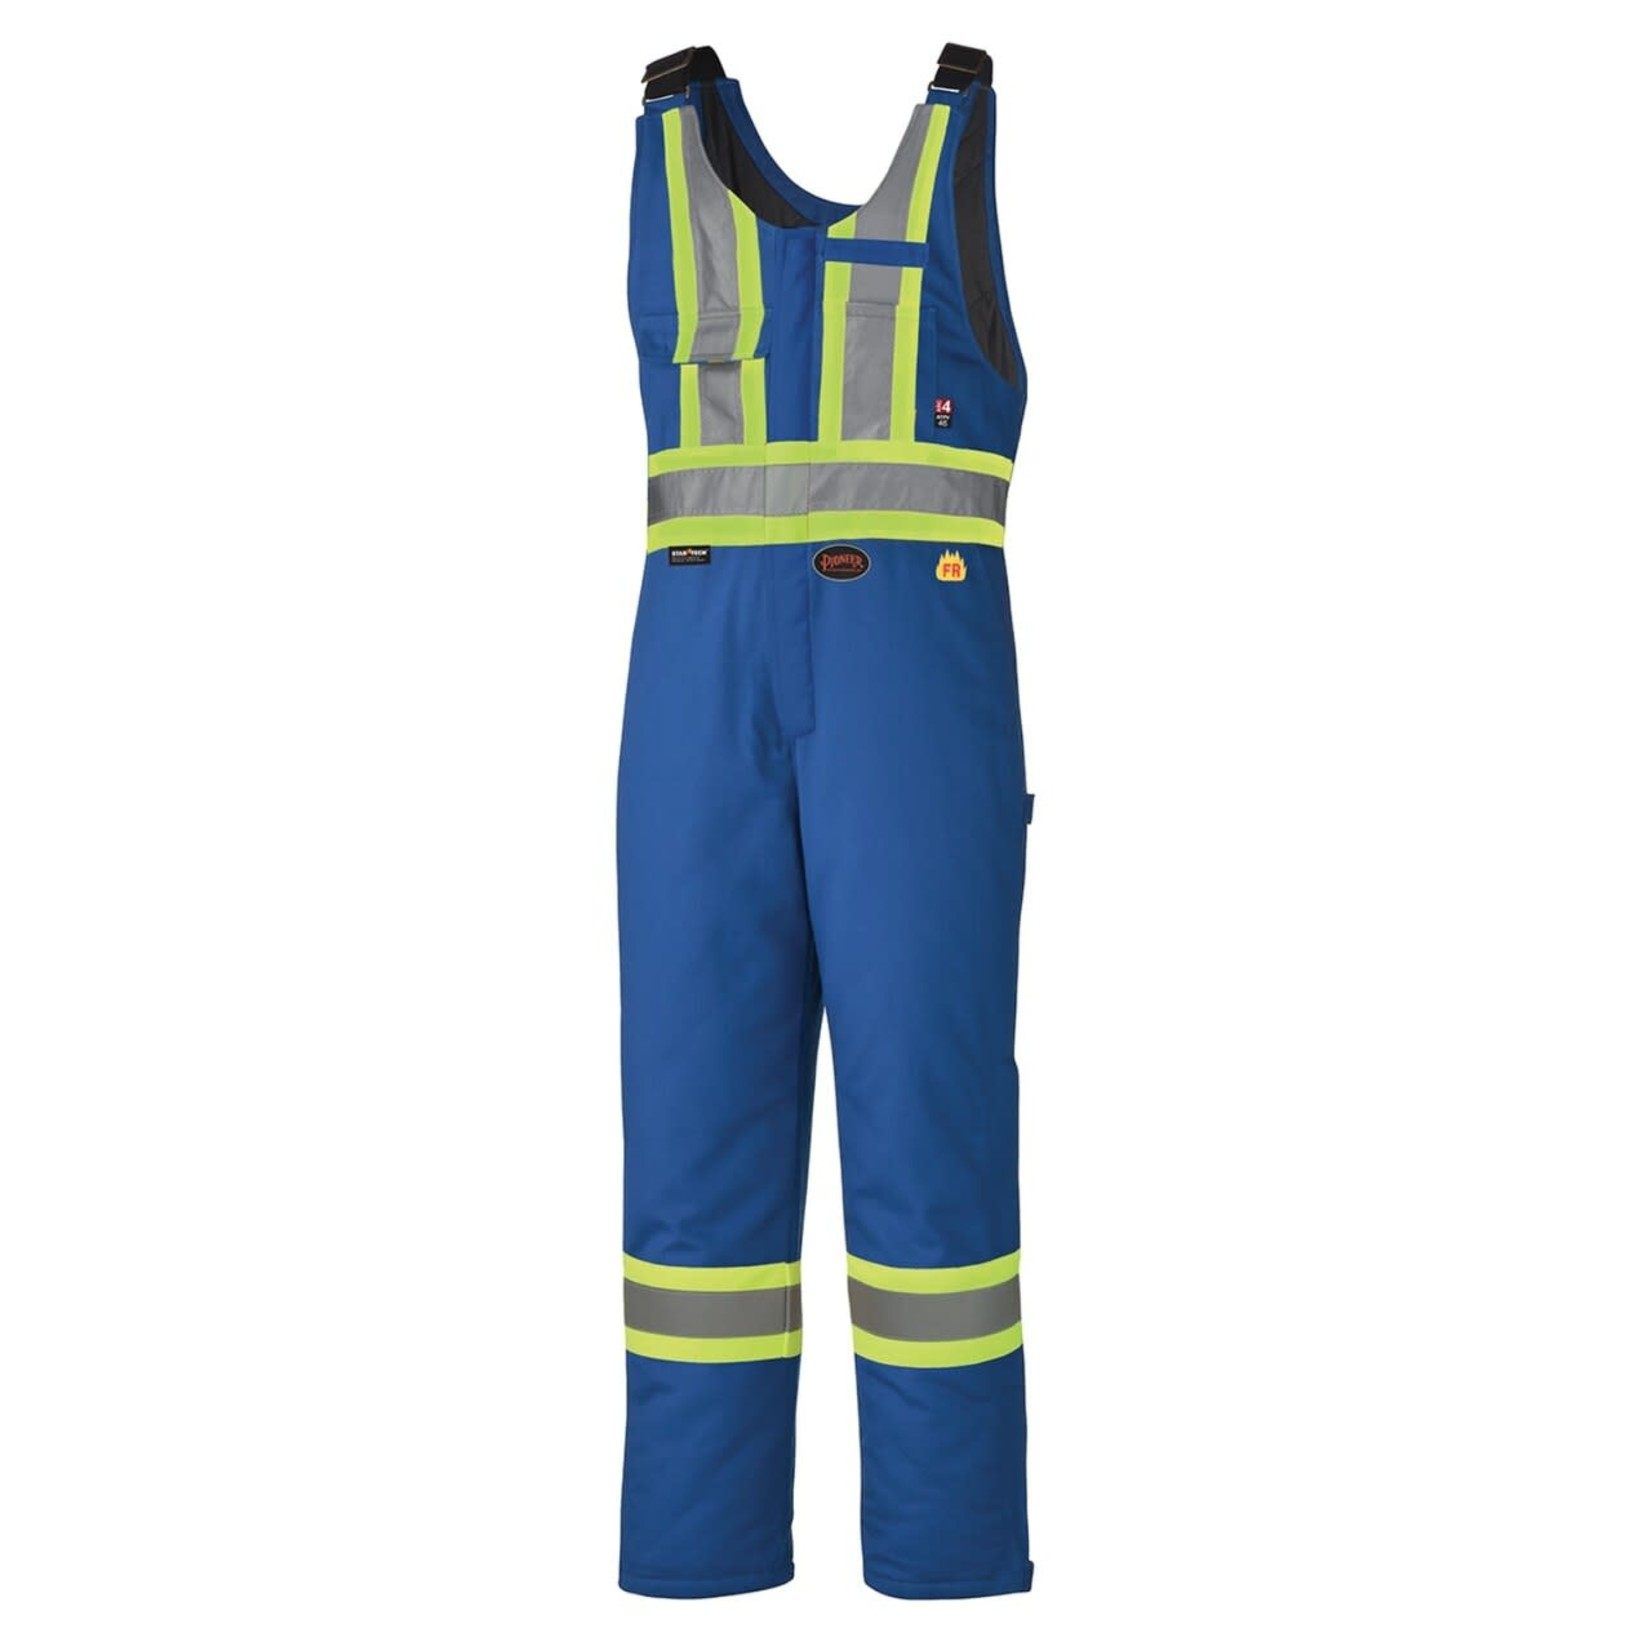 Pioneer Pioneer 5524A Flame Resistant Quilted Cotton Safety Overall